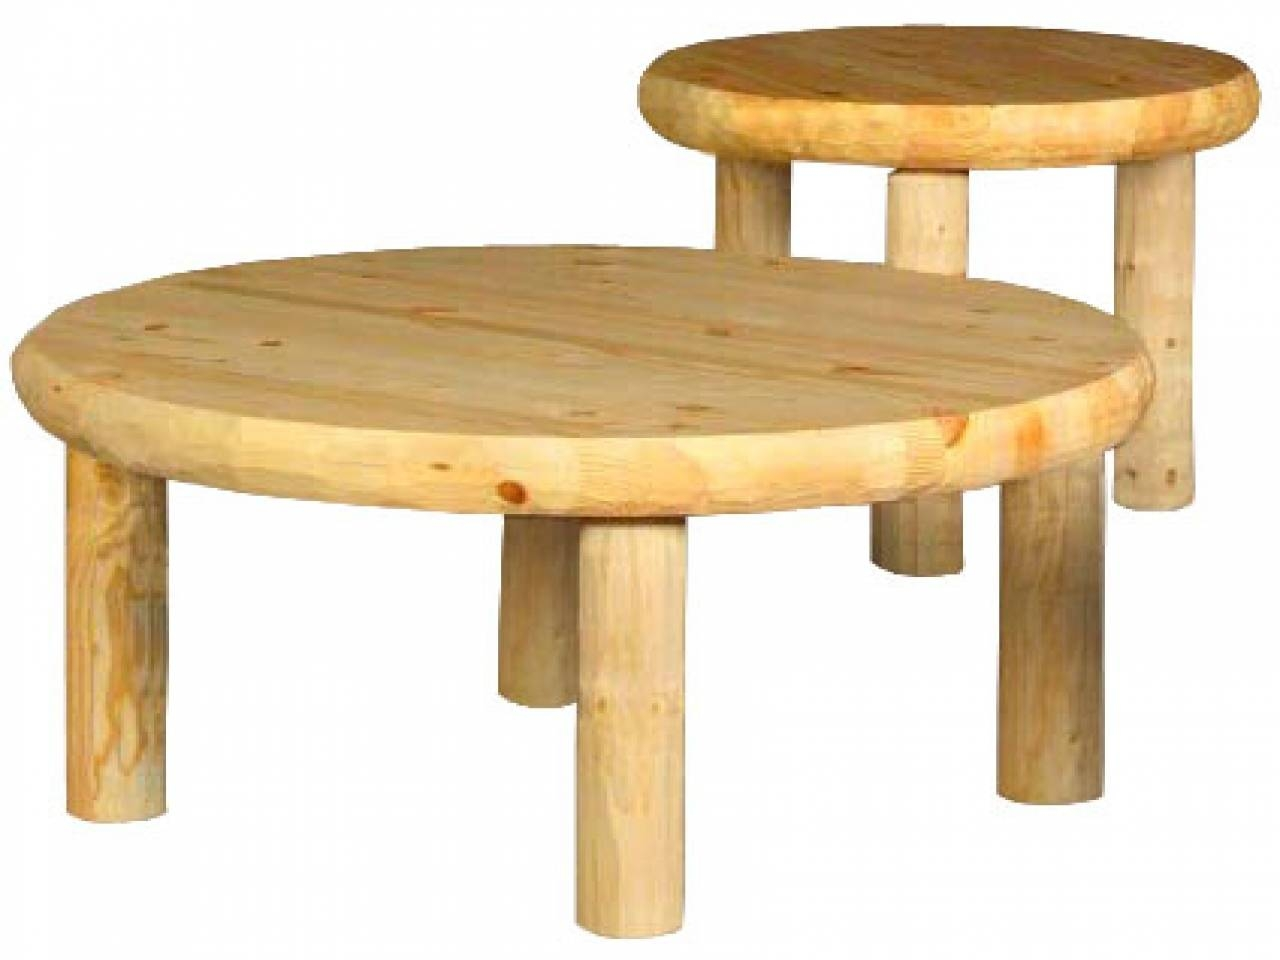 Round Pine Coffee Table - Starrkingschool intended for Round Pine Coffee Tables (Image 25 of 30)